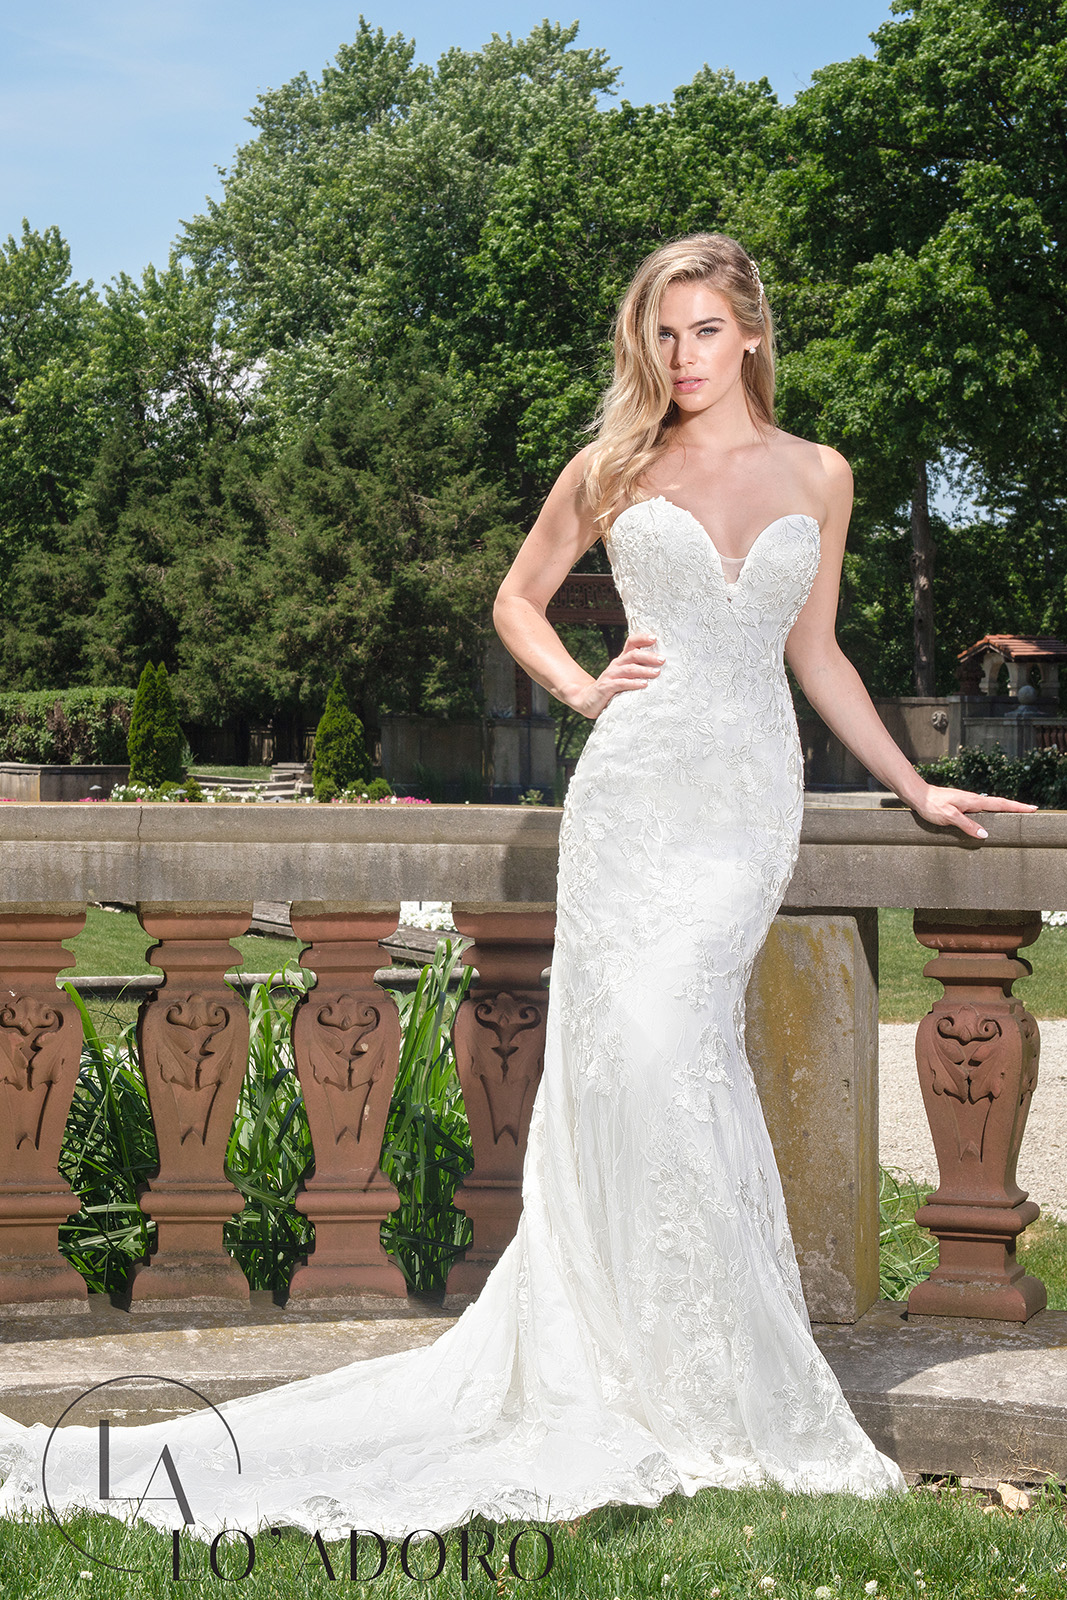 Strapless Fitted Long Lo' Adoro Bridal in White Color